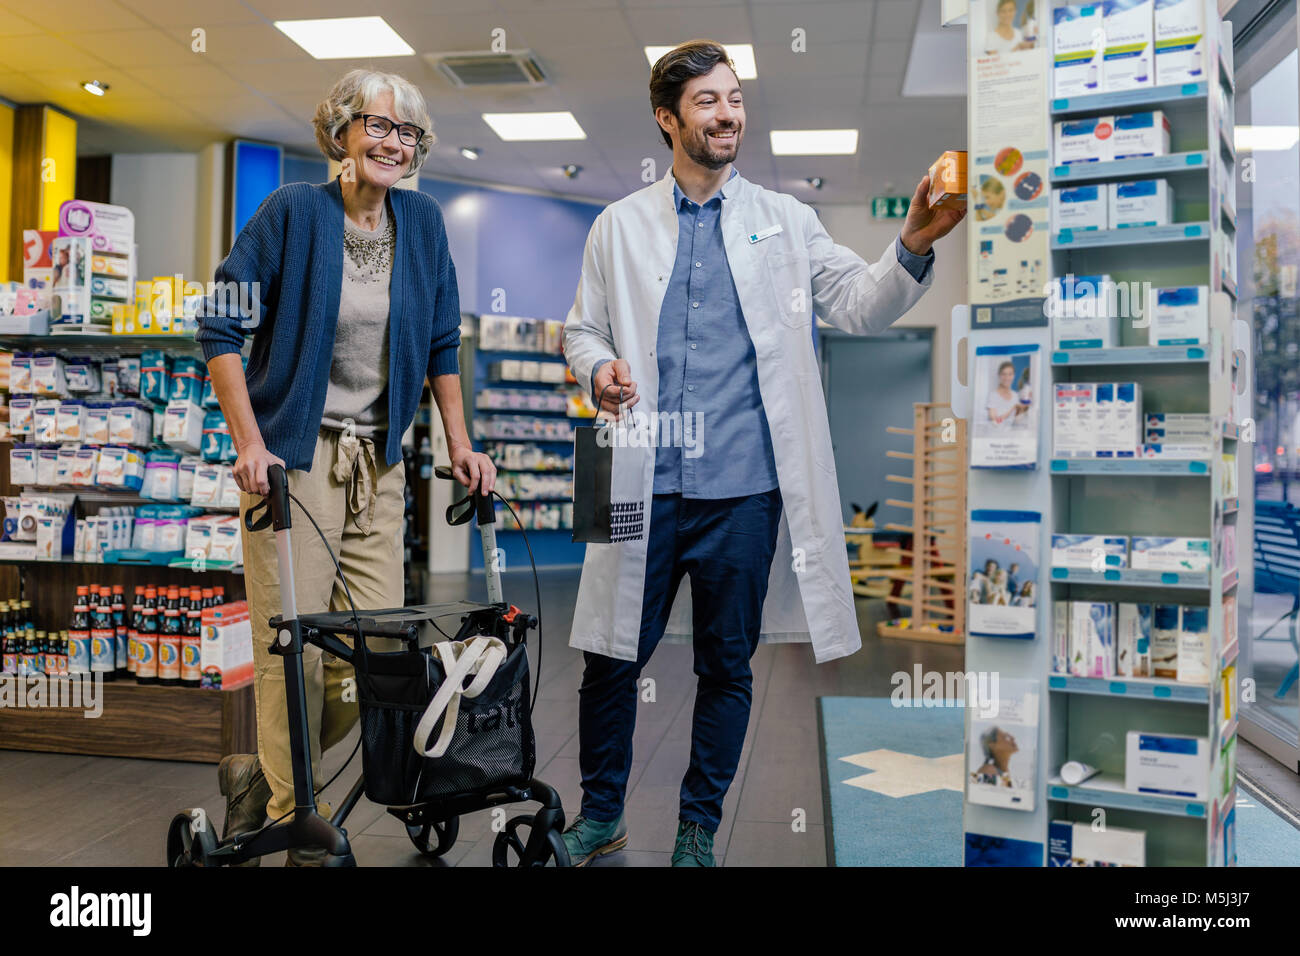 Smiling pharmacist and customer with wheeled walker in pharmacy - Stock Image